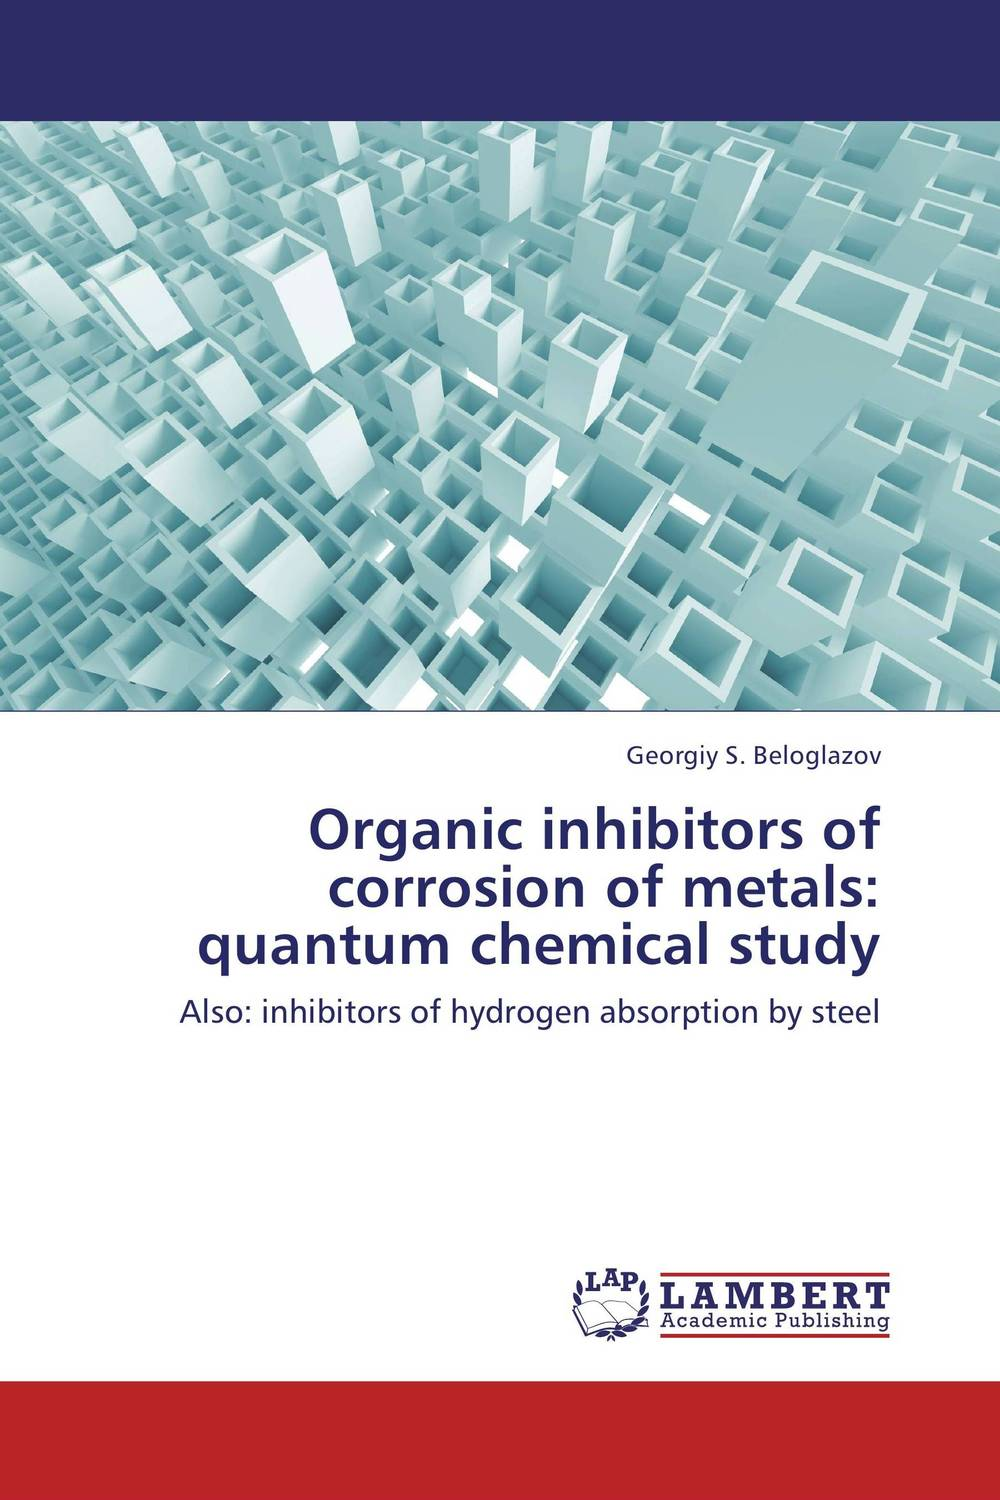 Organic inhibitors of corrosion of metals: quantum chemical study md yousuf ansari ganesh chandra sahoo and pradeep das structure identification inhibitors designing against hgprtase